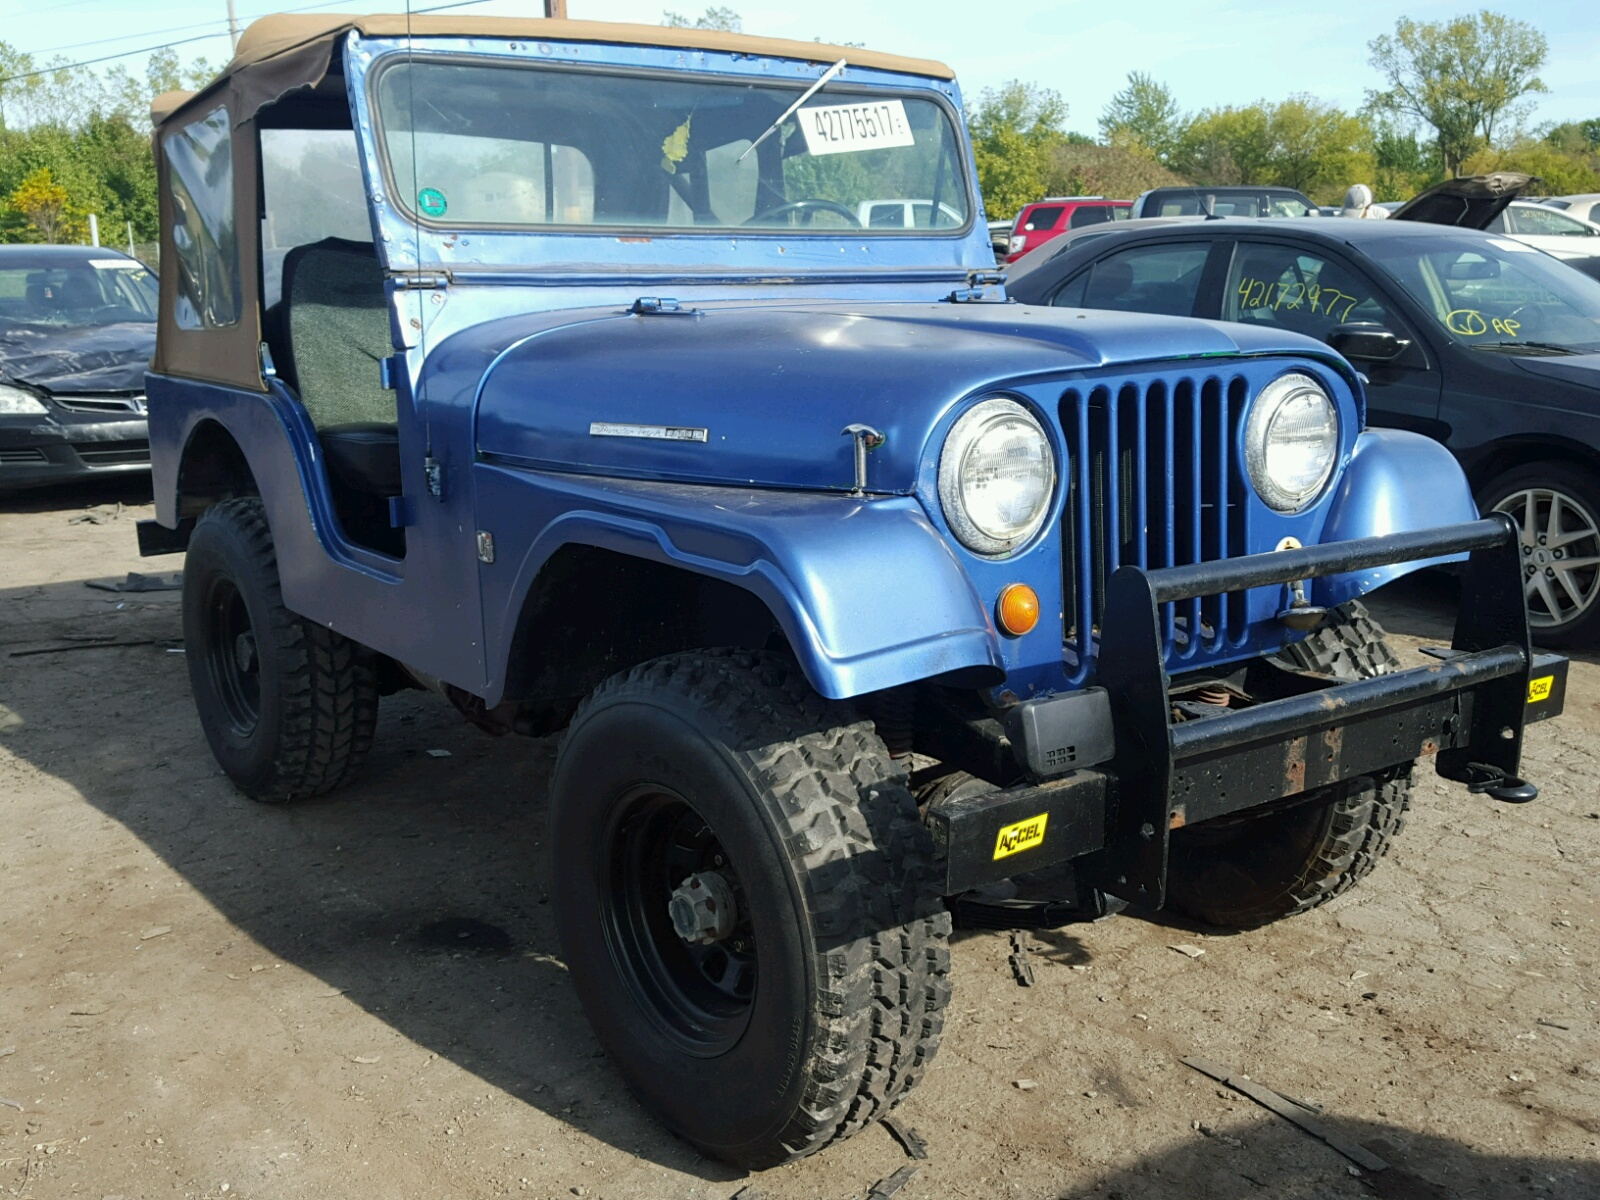 looking good much amc in too mile cj order for after didn change sale were s enlarged barn one t jeep fit couple find when until purchased bit to things a they